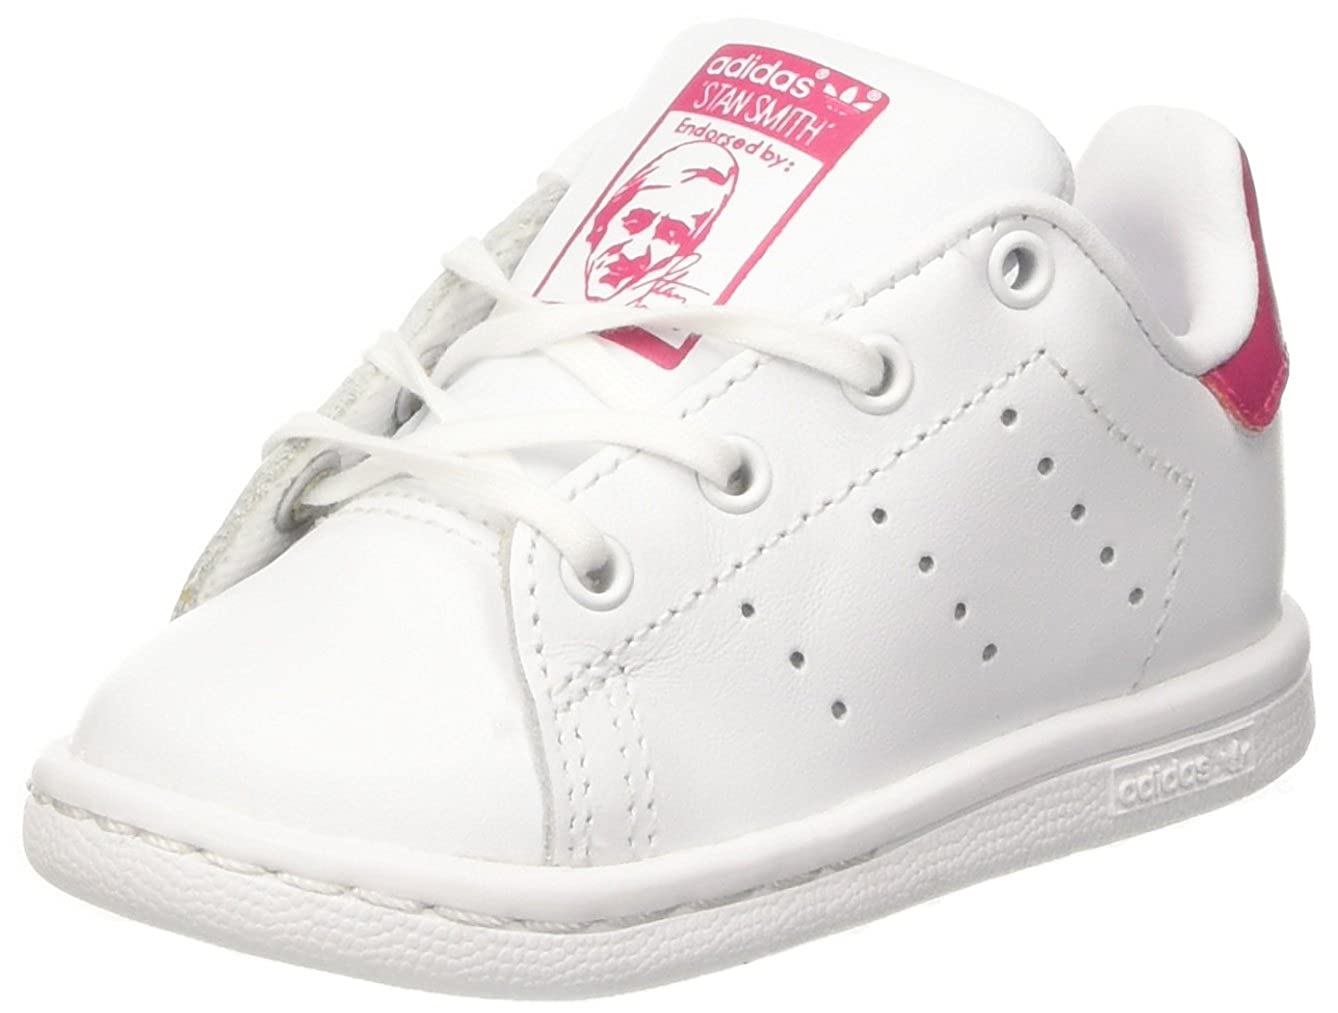 adidas Baby Girls' Stan Smith I Gymnastics Shoes BB2999